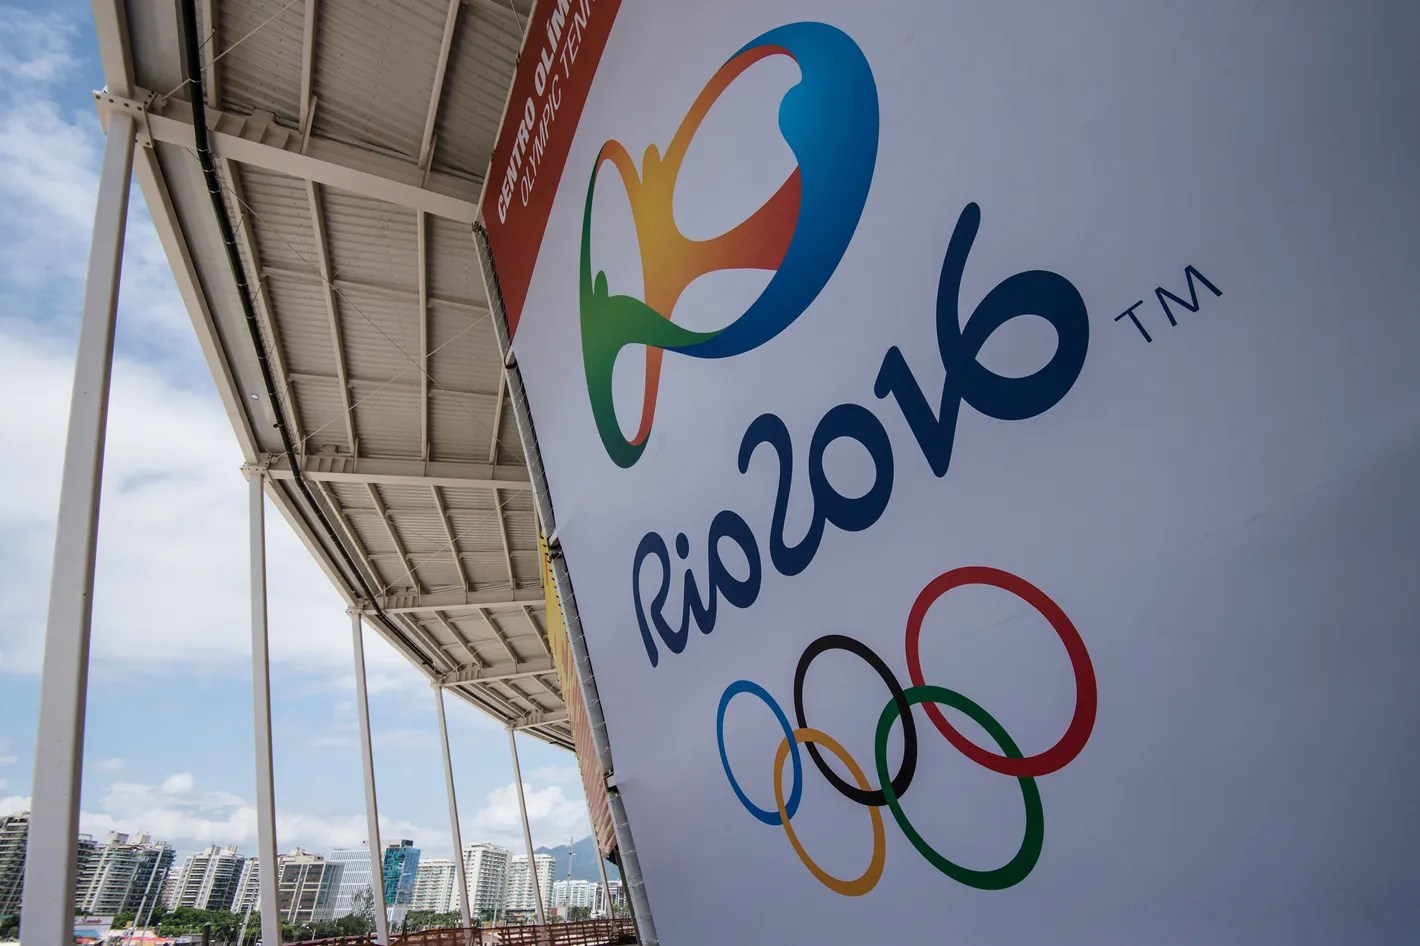 Rio Olympic The 2016 Rio Olympics Are Already A Disaster